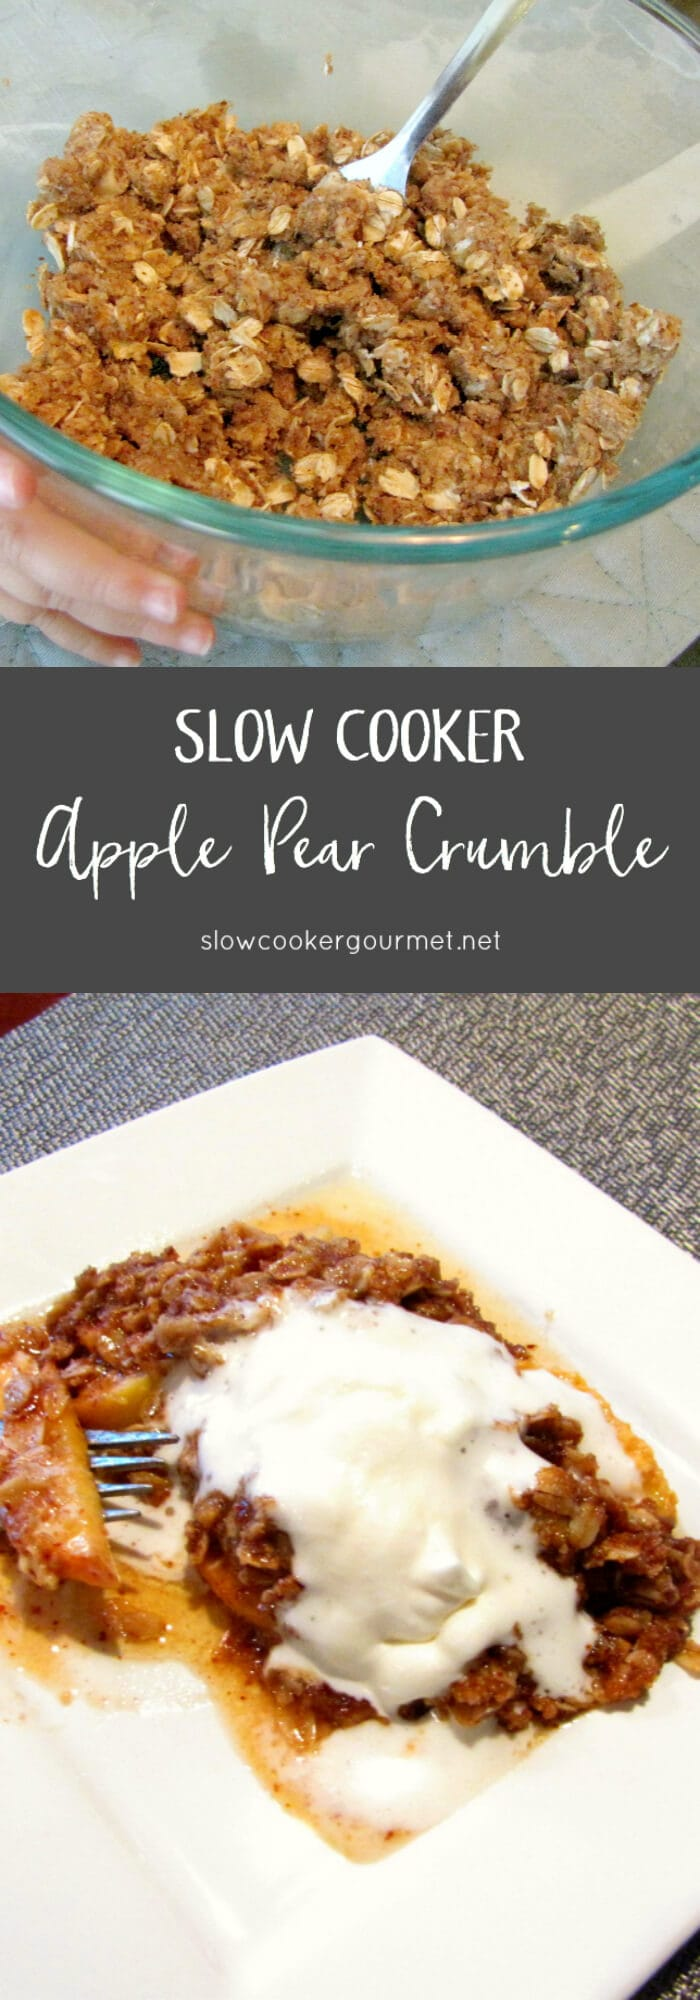 slow cooker apple pear crumble - slow cooker gourmet